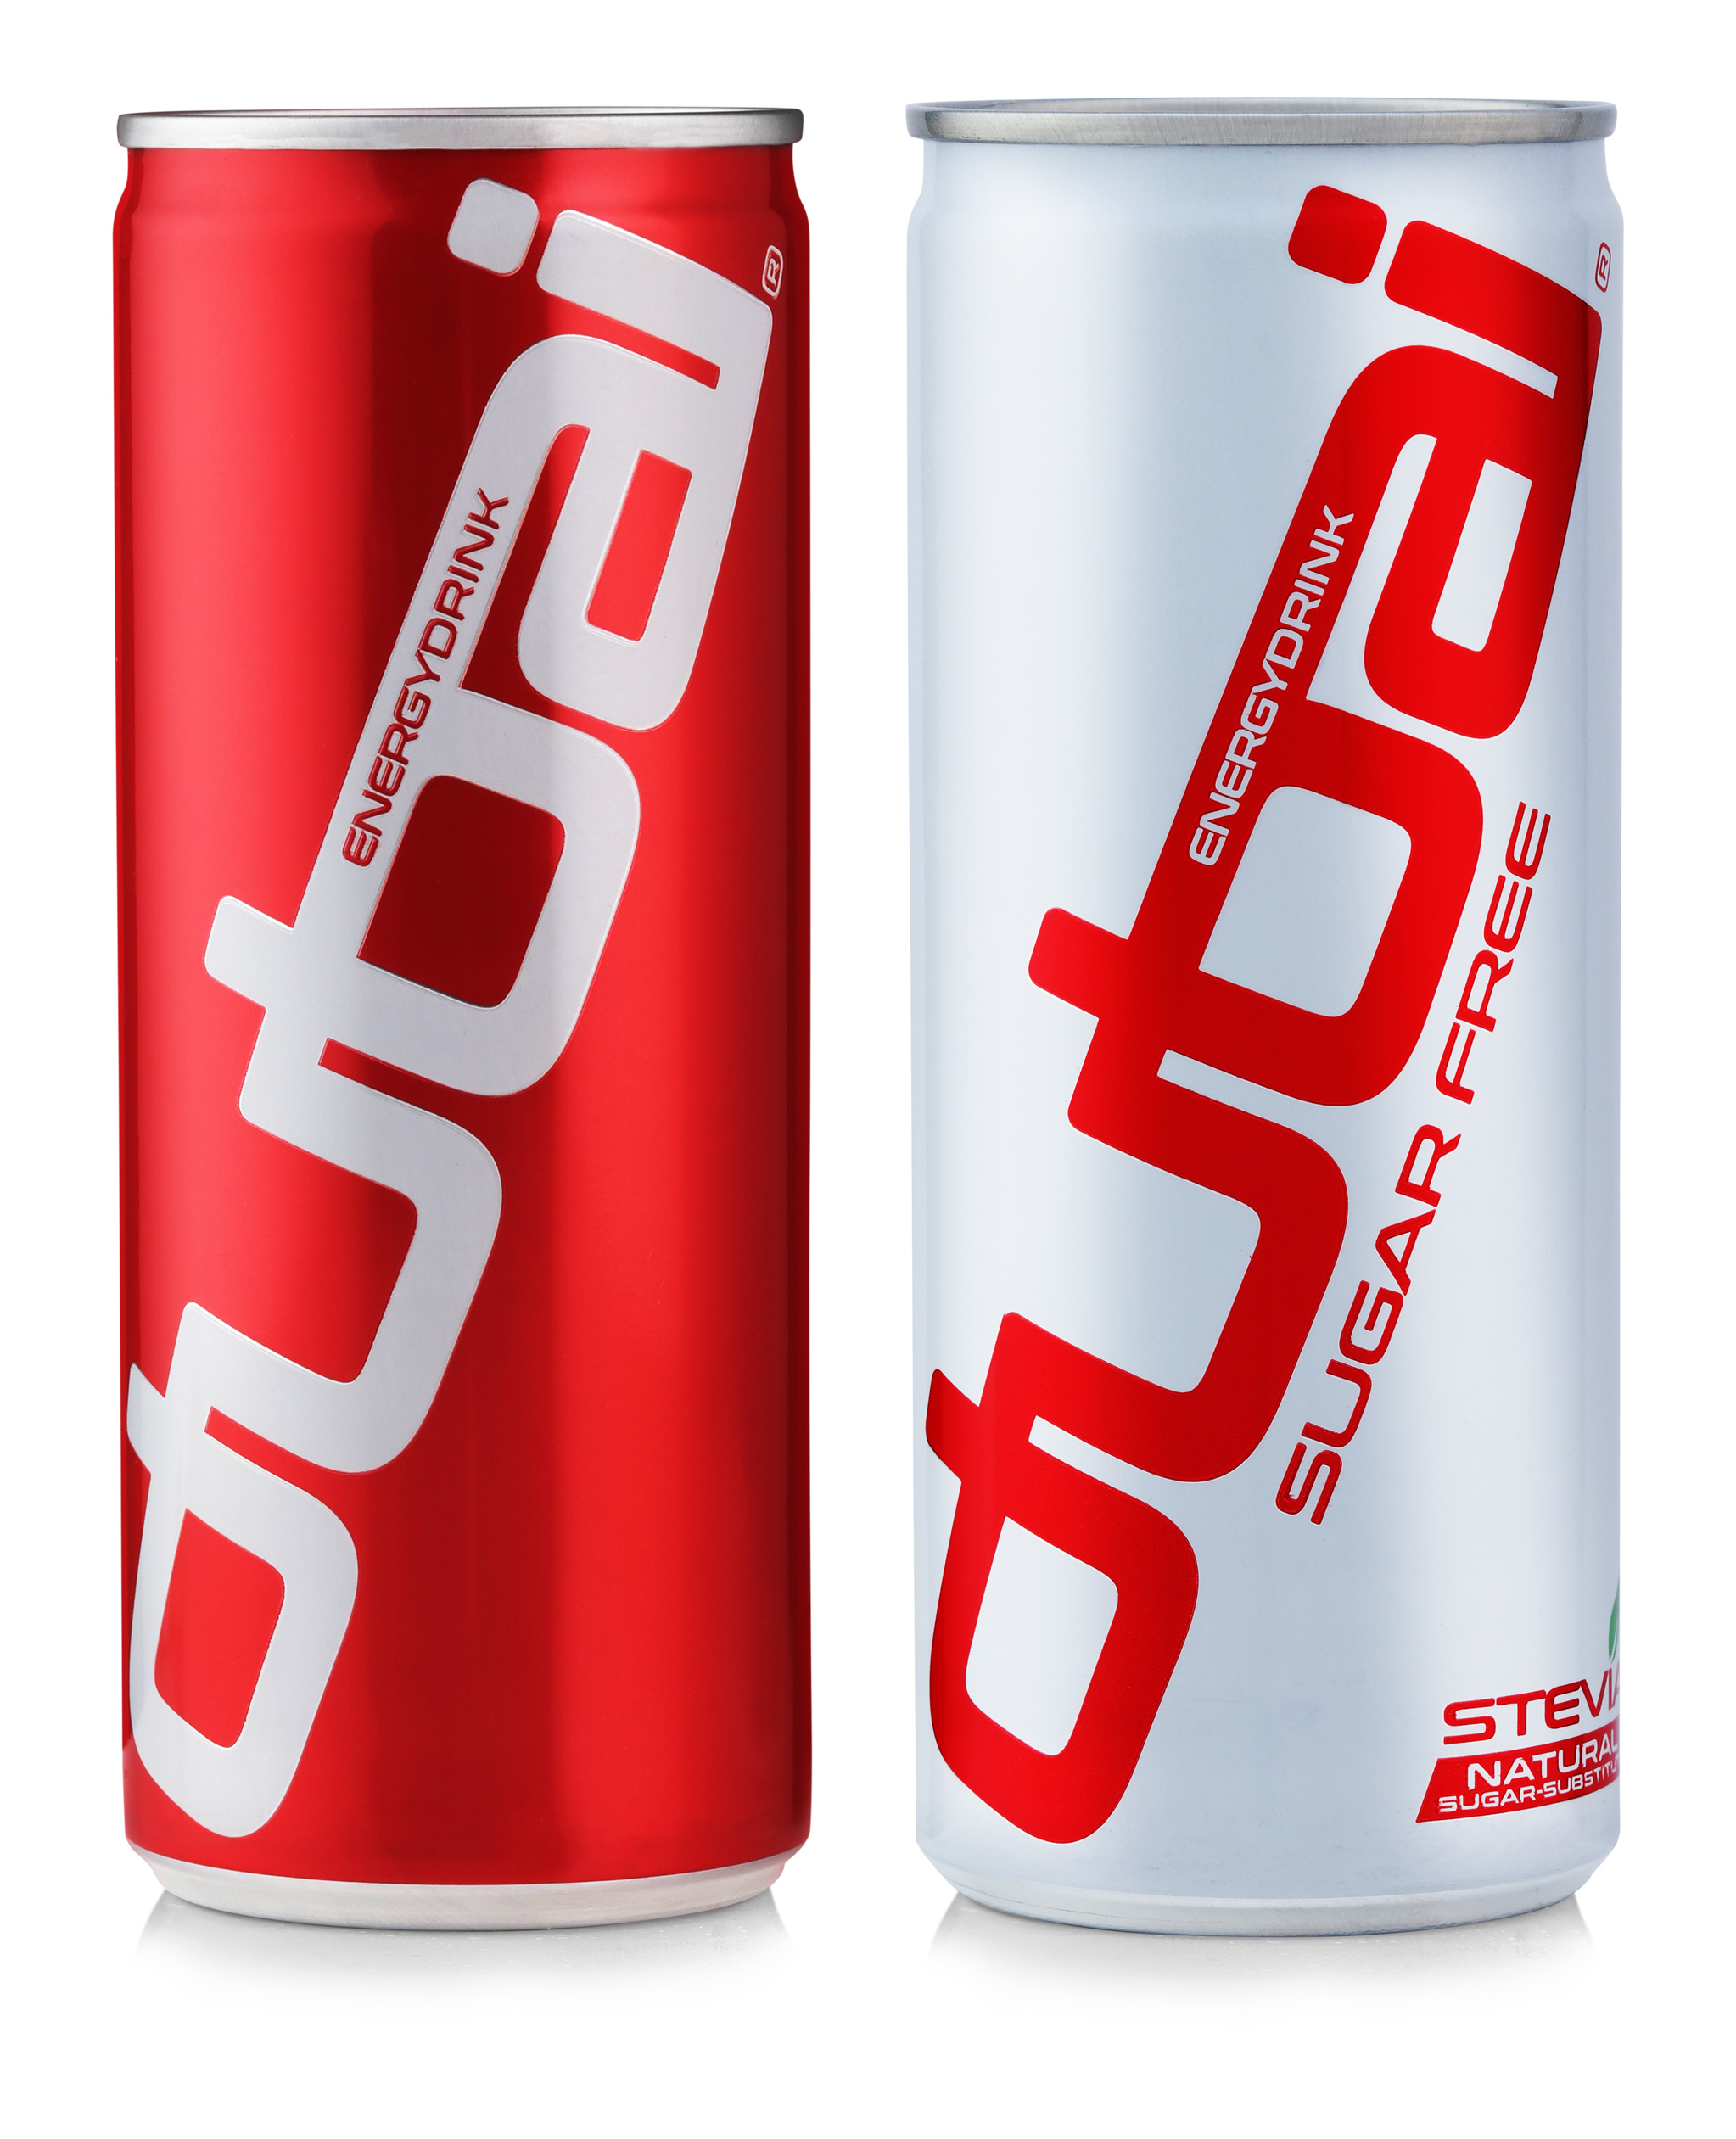 The UAE's first Sugar-FREE energy drink